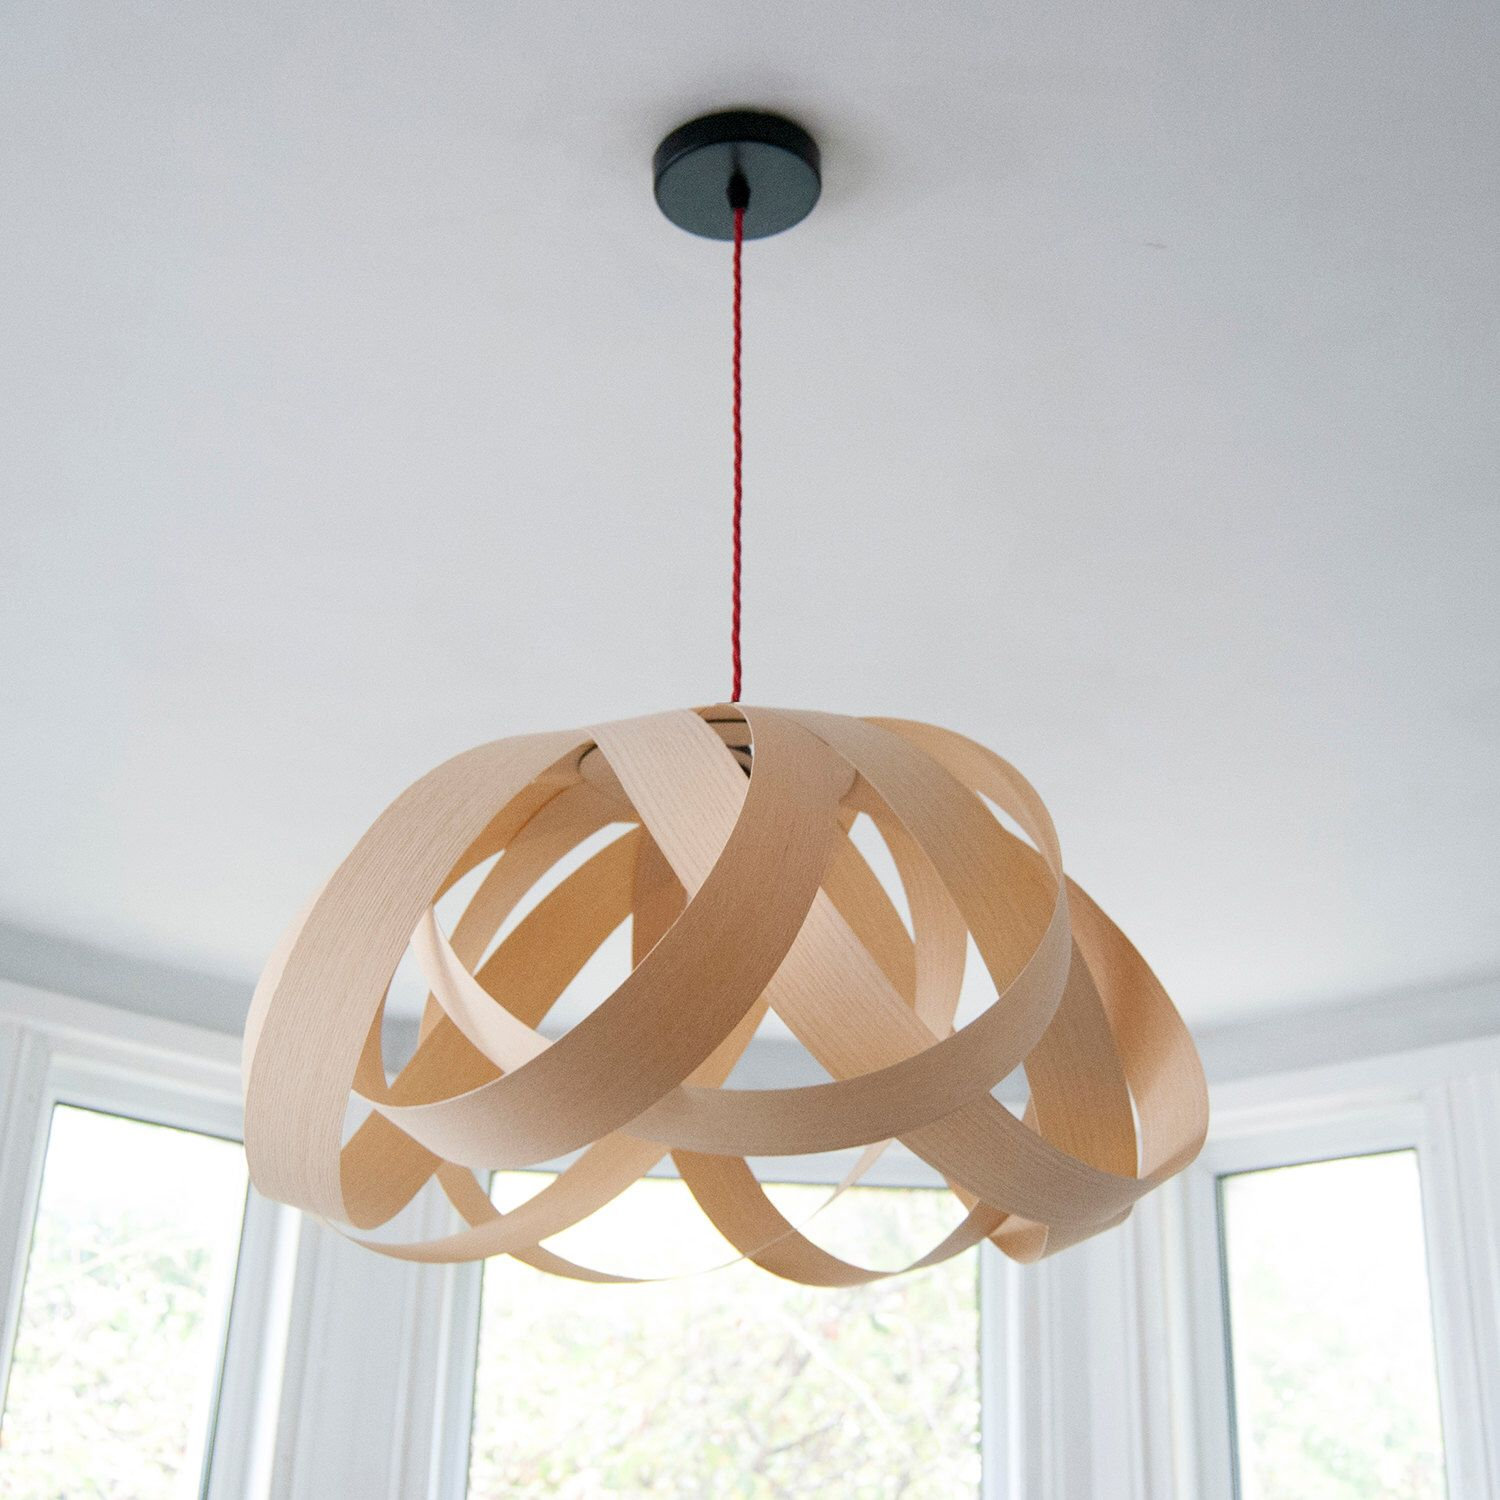 Daisy dining room pendant lampshade (ash wood)